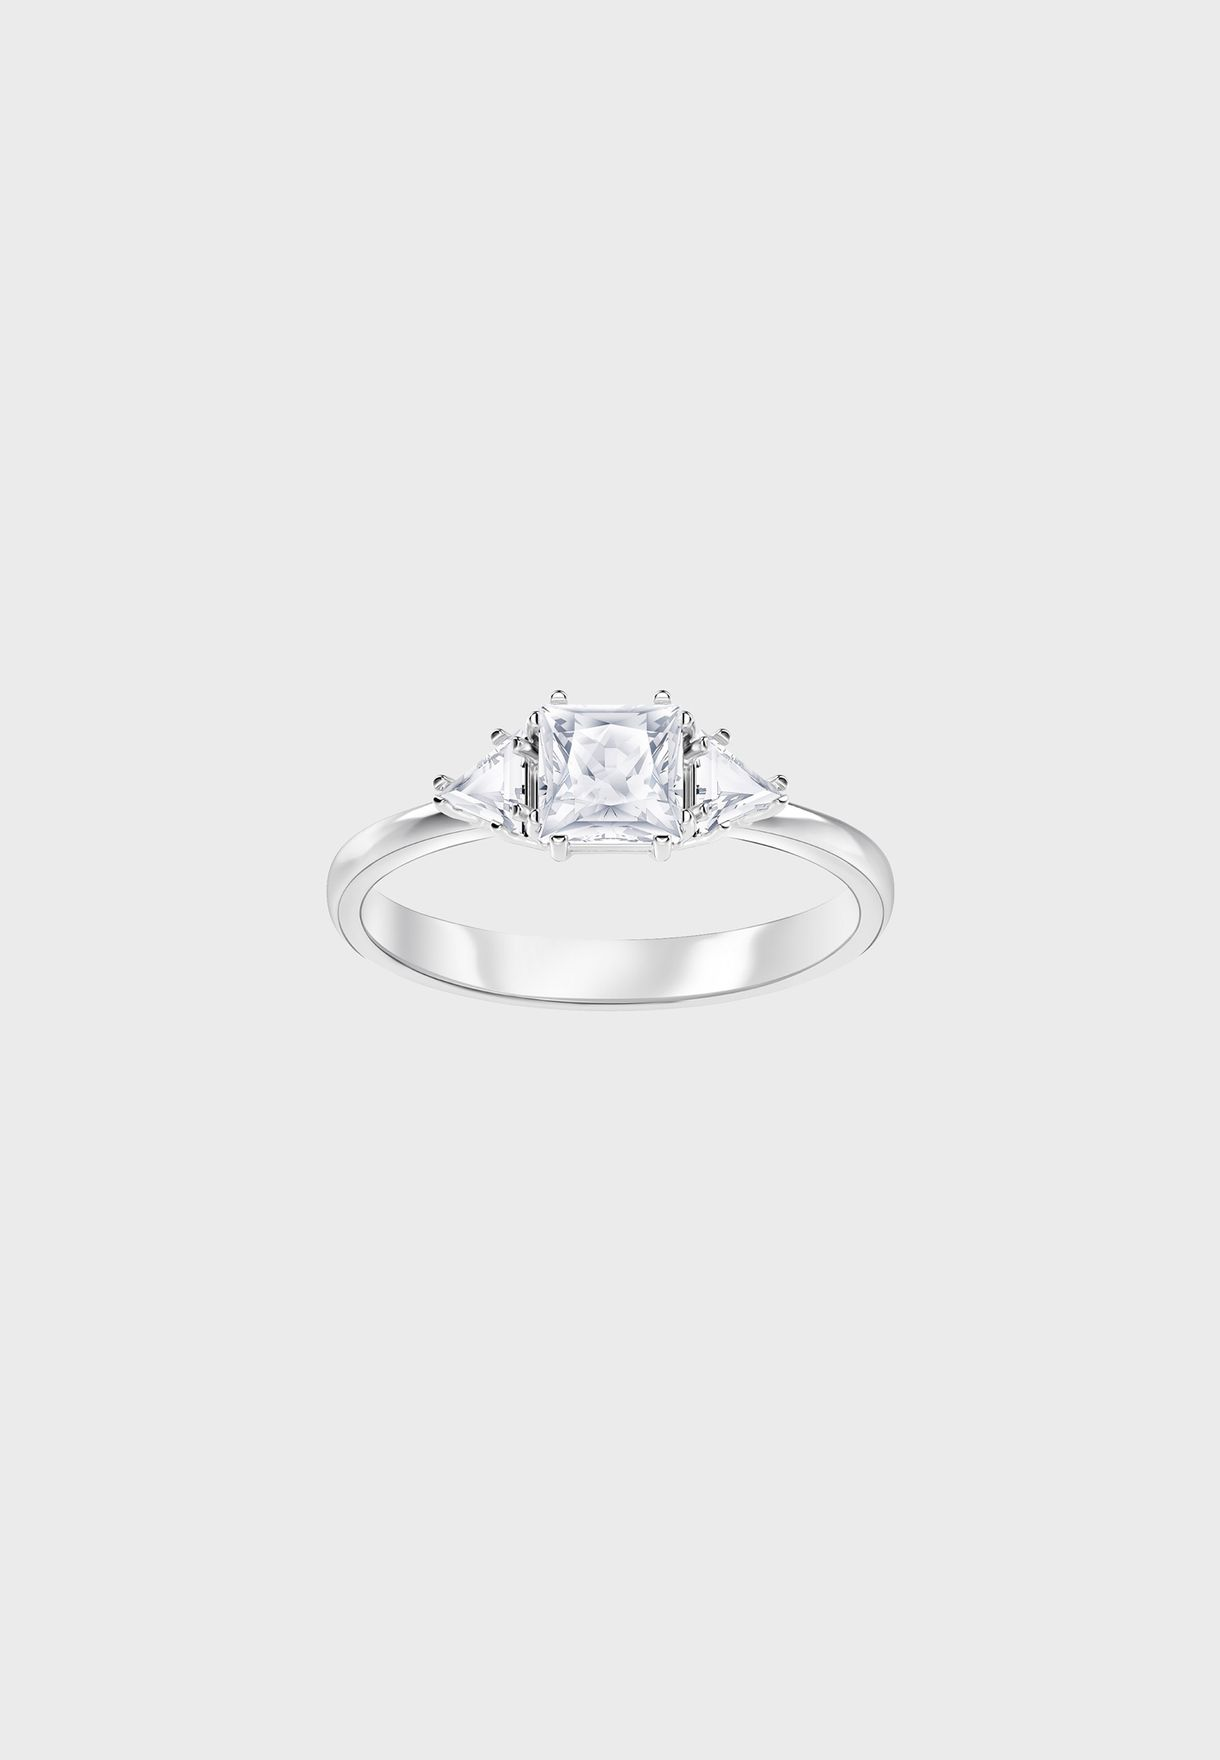 35ff85af3 Shop Swarovski silver Attract Trilogy Ring 5402447/5402434/5371381 ...